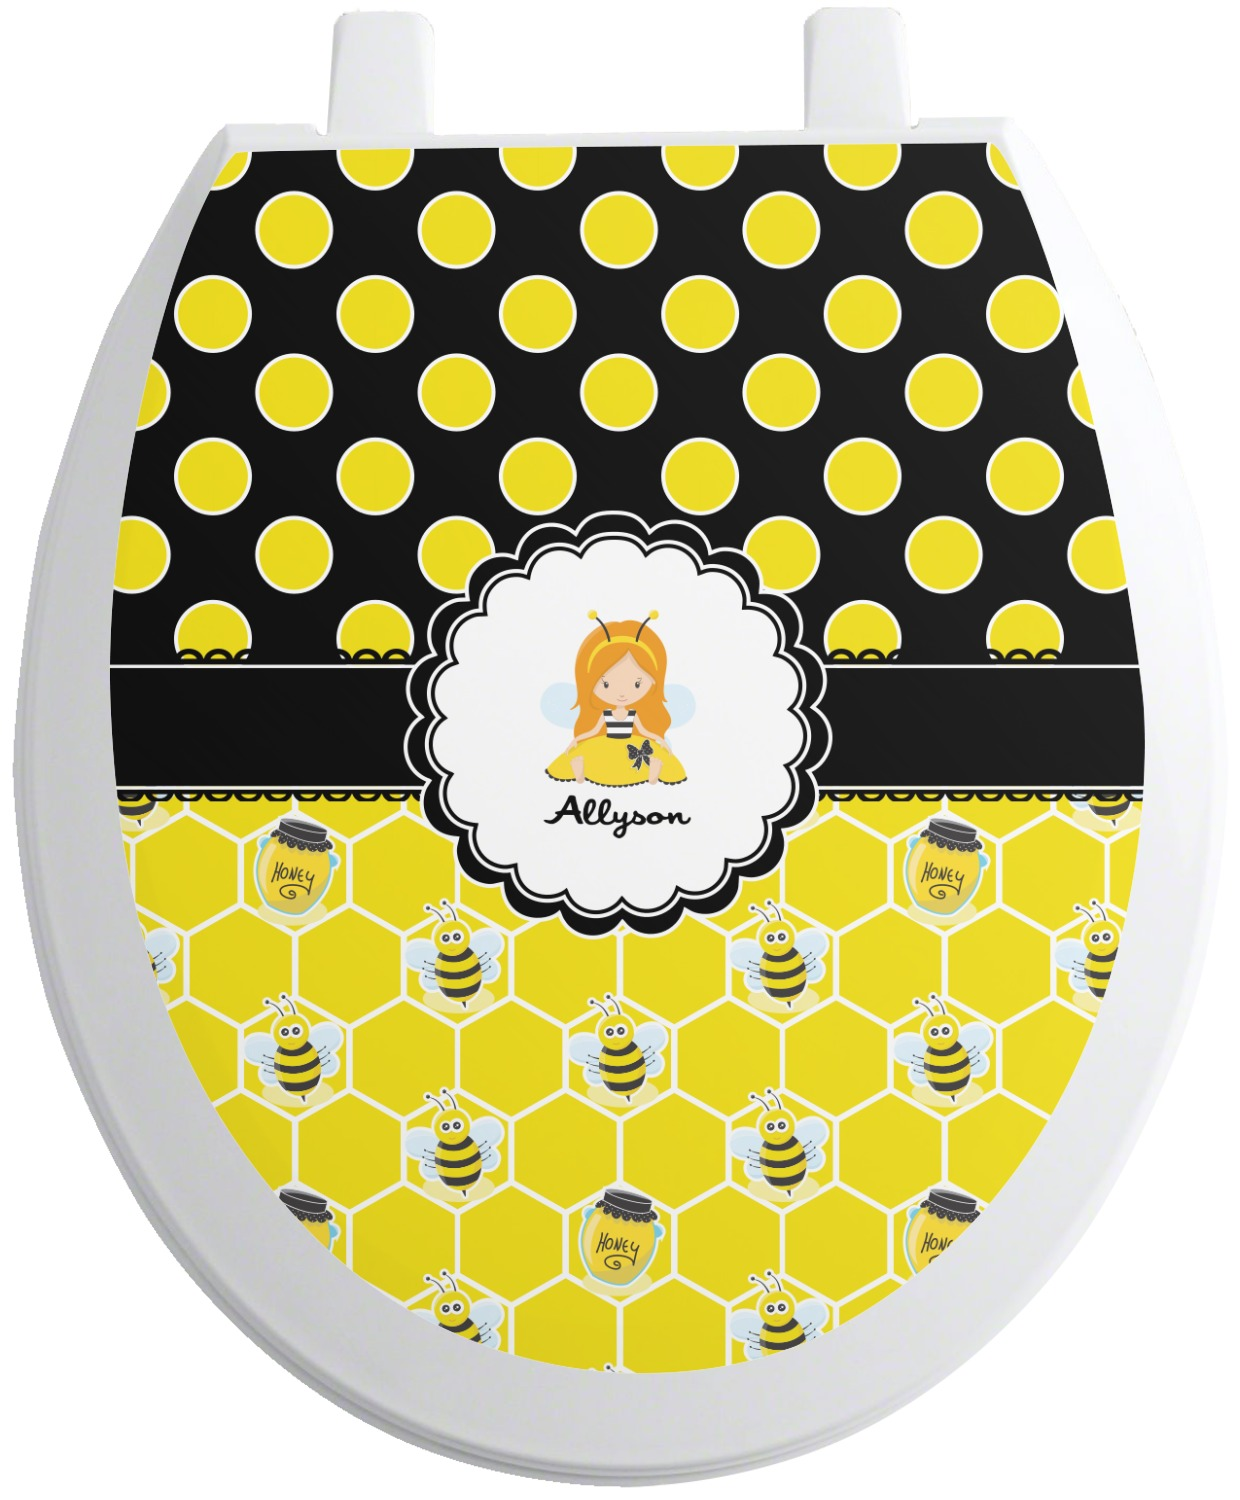 Groovy Honeycomb Bees Polka Dots Toilet Seat Decal Personalized Theyellowbook Wood Chair Design Ideas Theyellowbookinfo